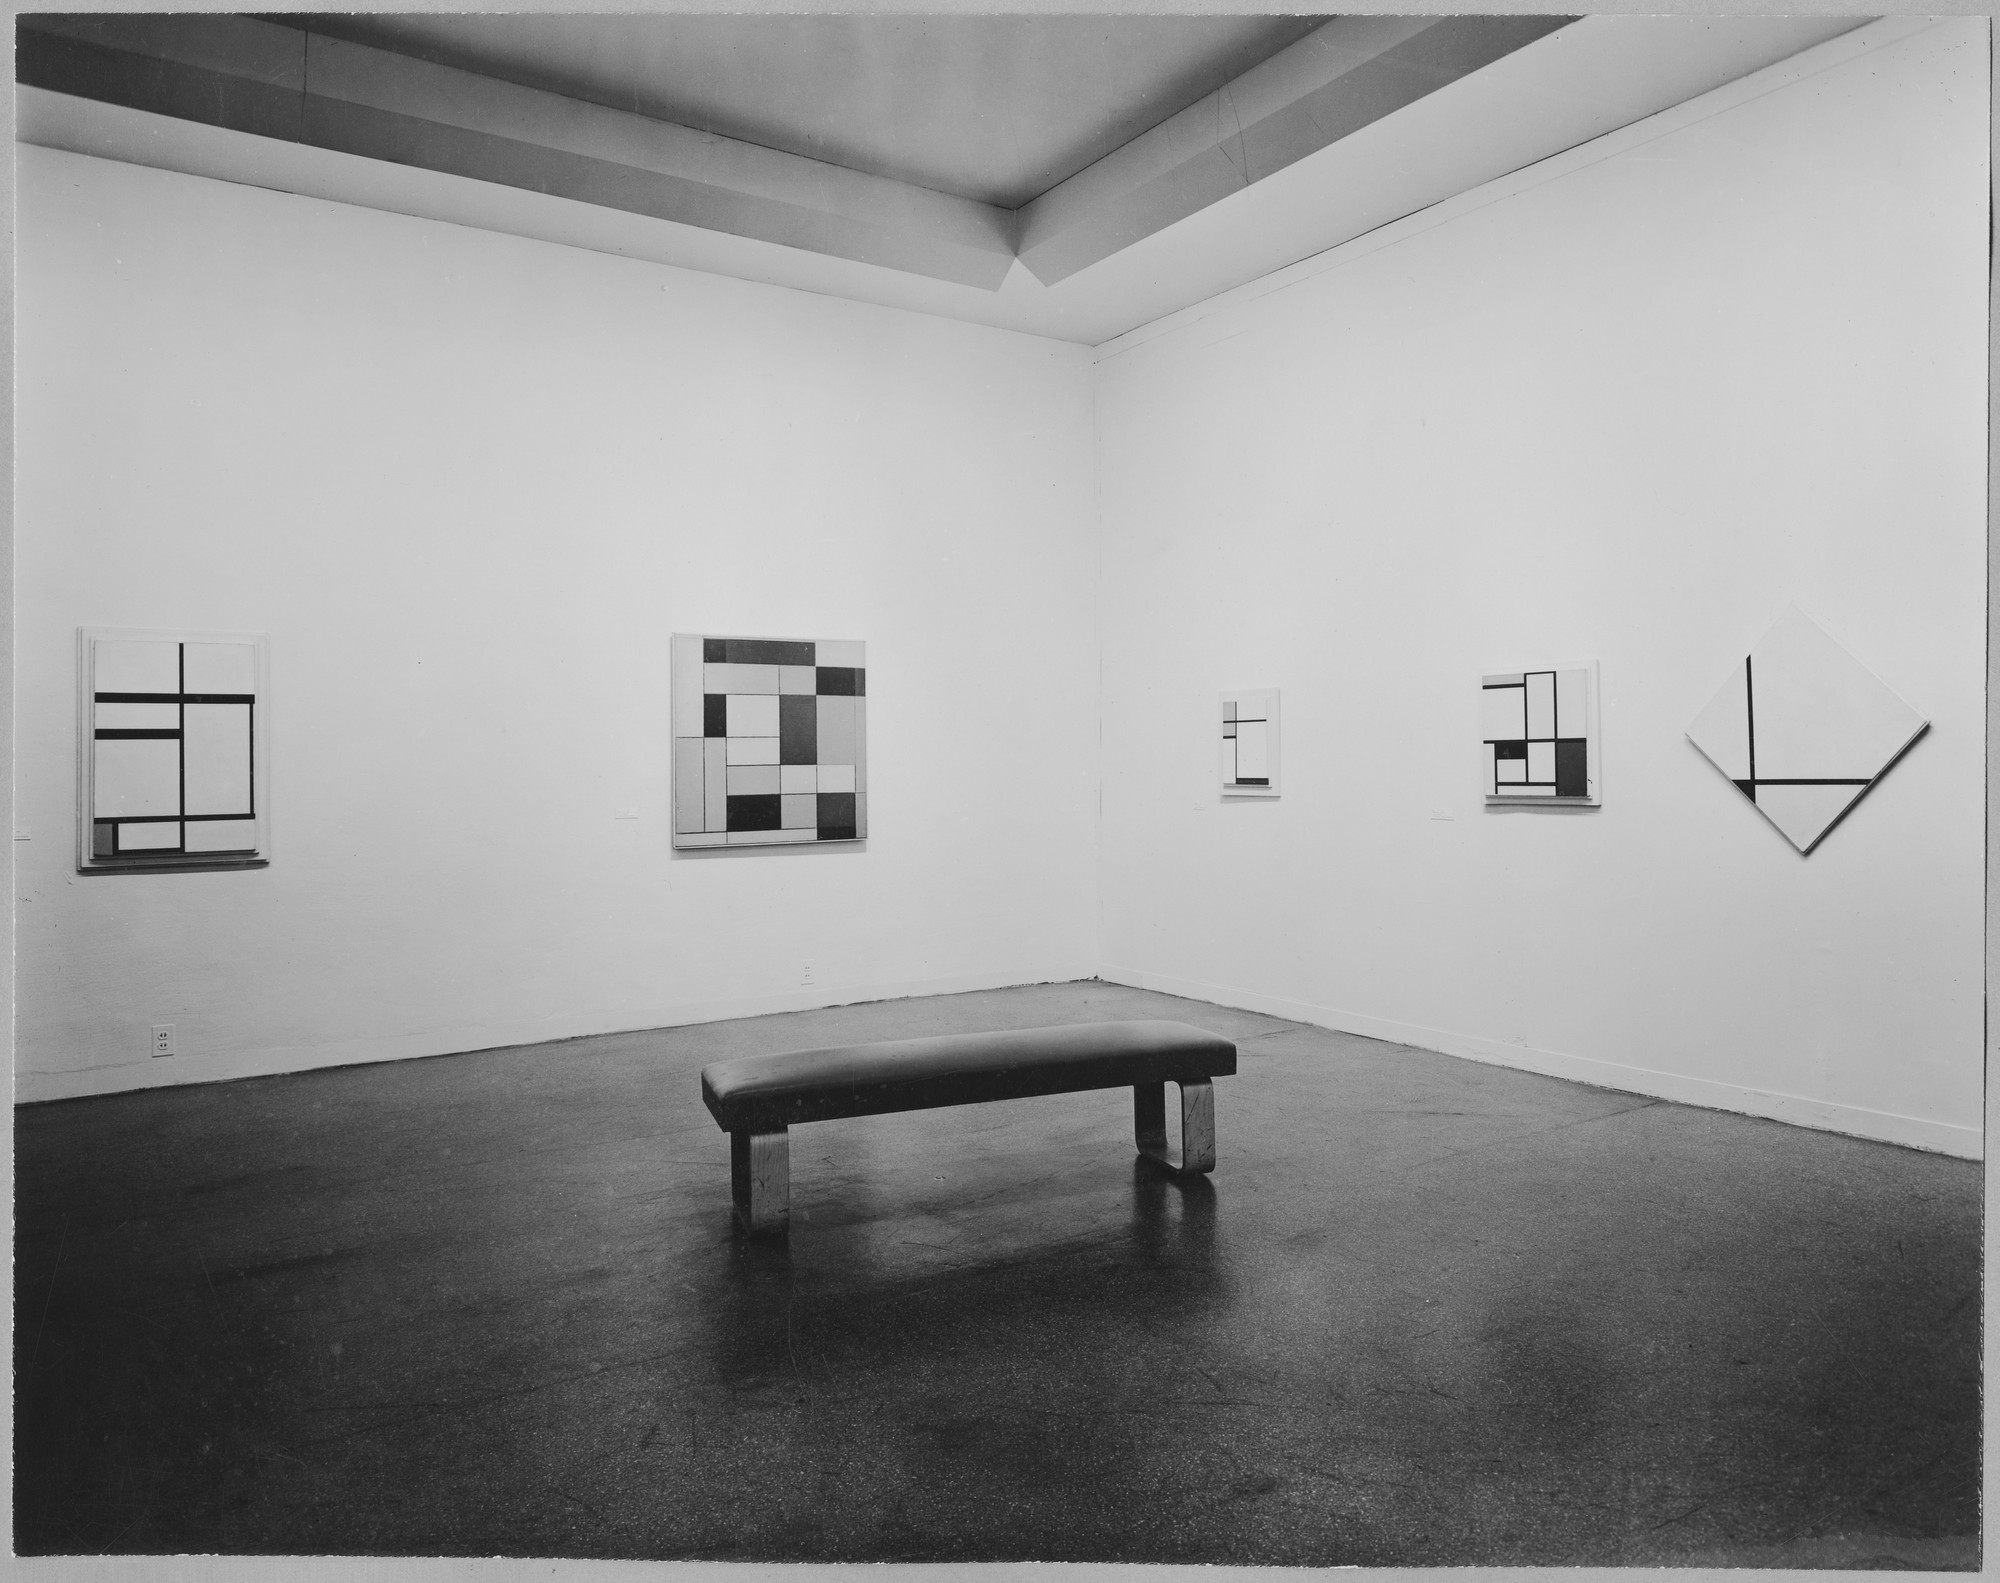 "Installation view of the exhibition, ""Piet Mondrian."" March 21, 1945–May 13, 1945. Photographic Archive. The Museum of Modern Art Archives, New York. IN282.1. Photograph by Soichi Sunami."